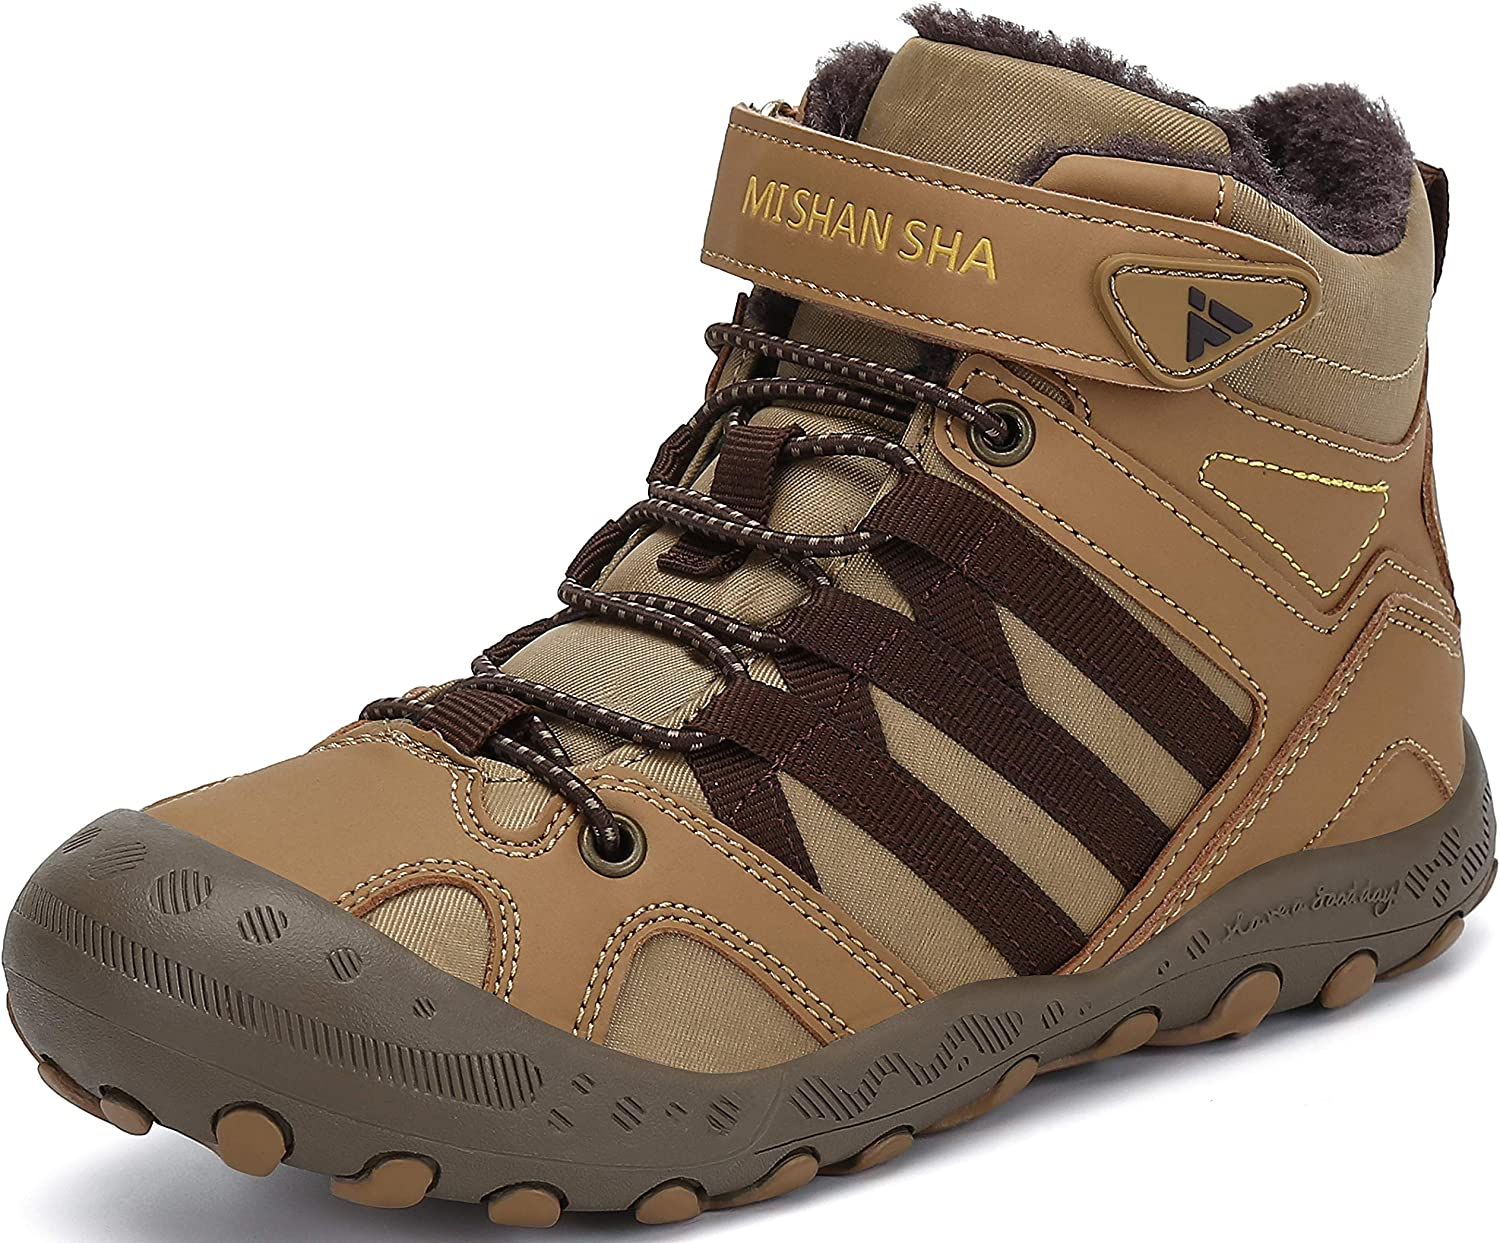 Mishansha Winter Childrens Boots Warm Fur Lined Outdoor Shoes for Boys /& Girls